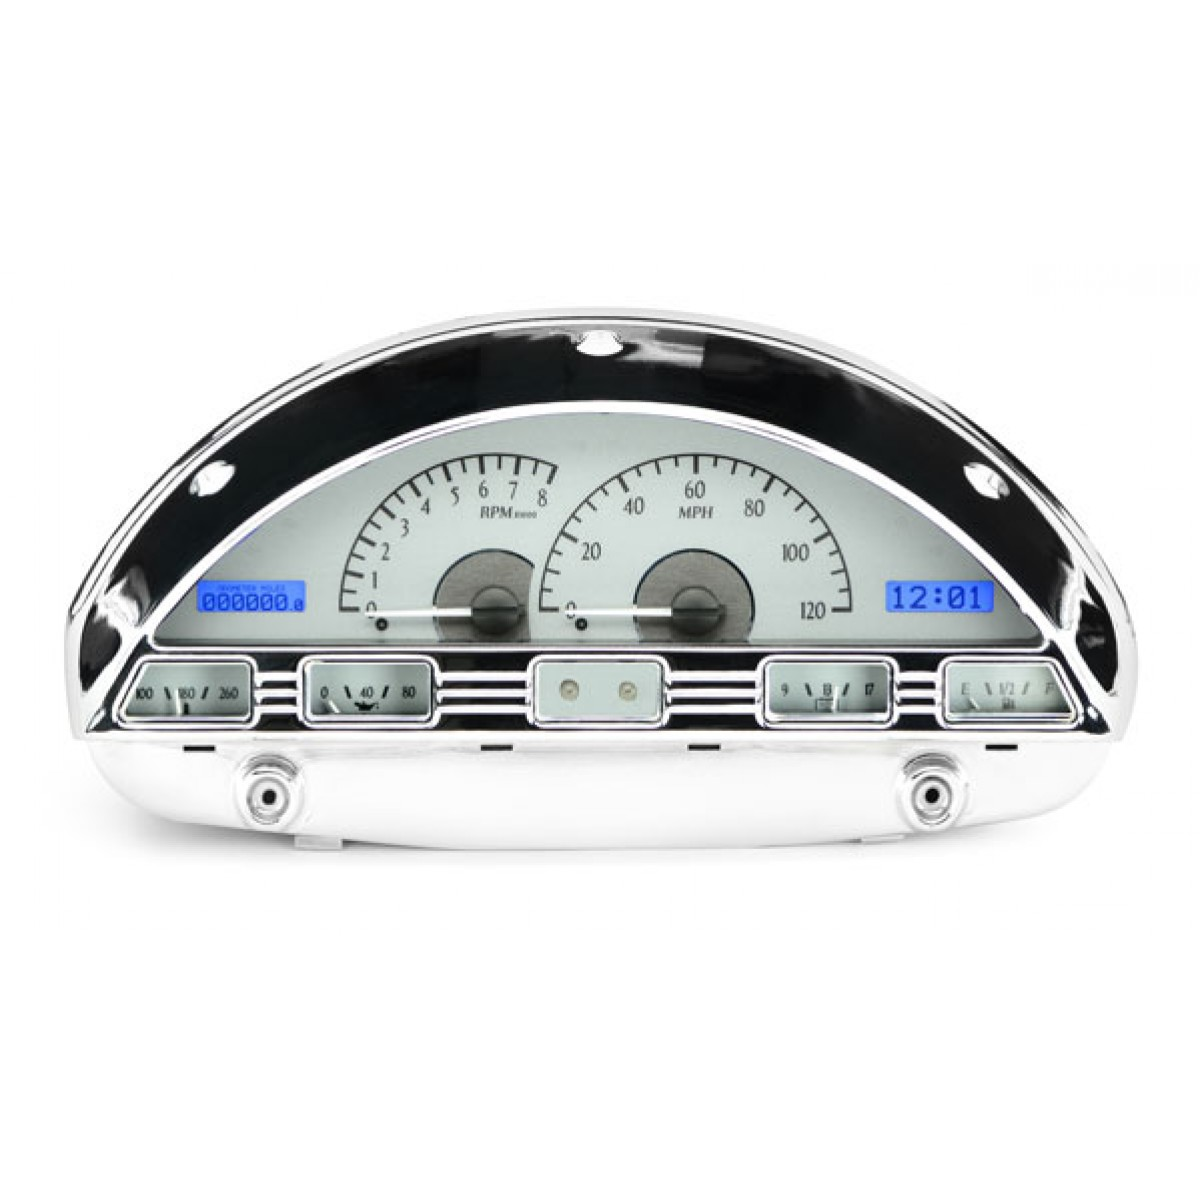 hight resolution of 1956 ford pickup vhx gauge instruments dakota digital vhx 56f pu